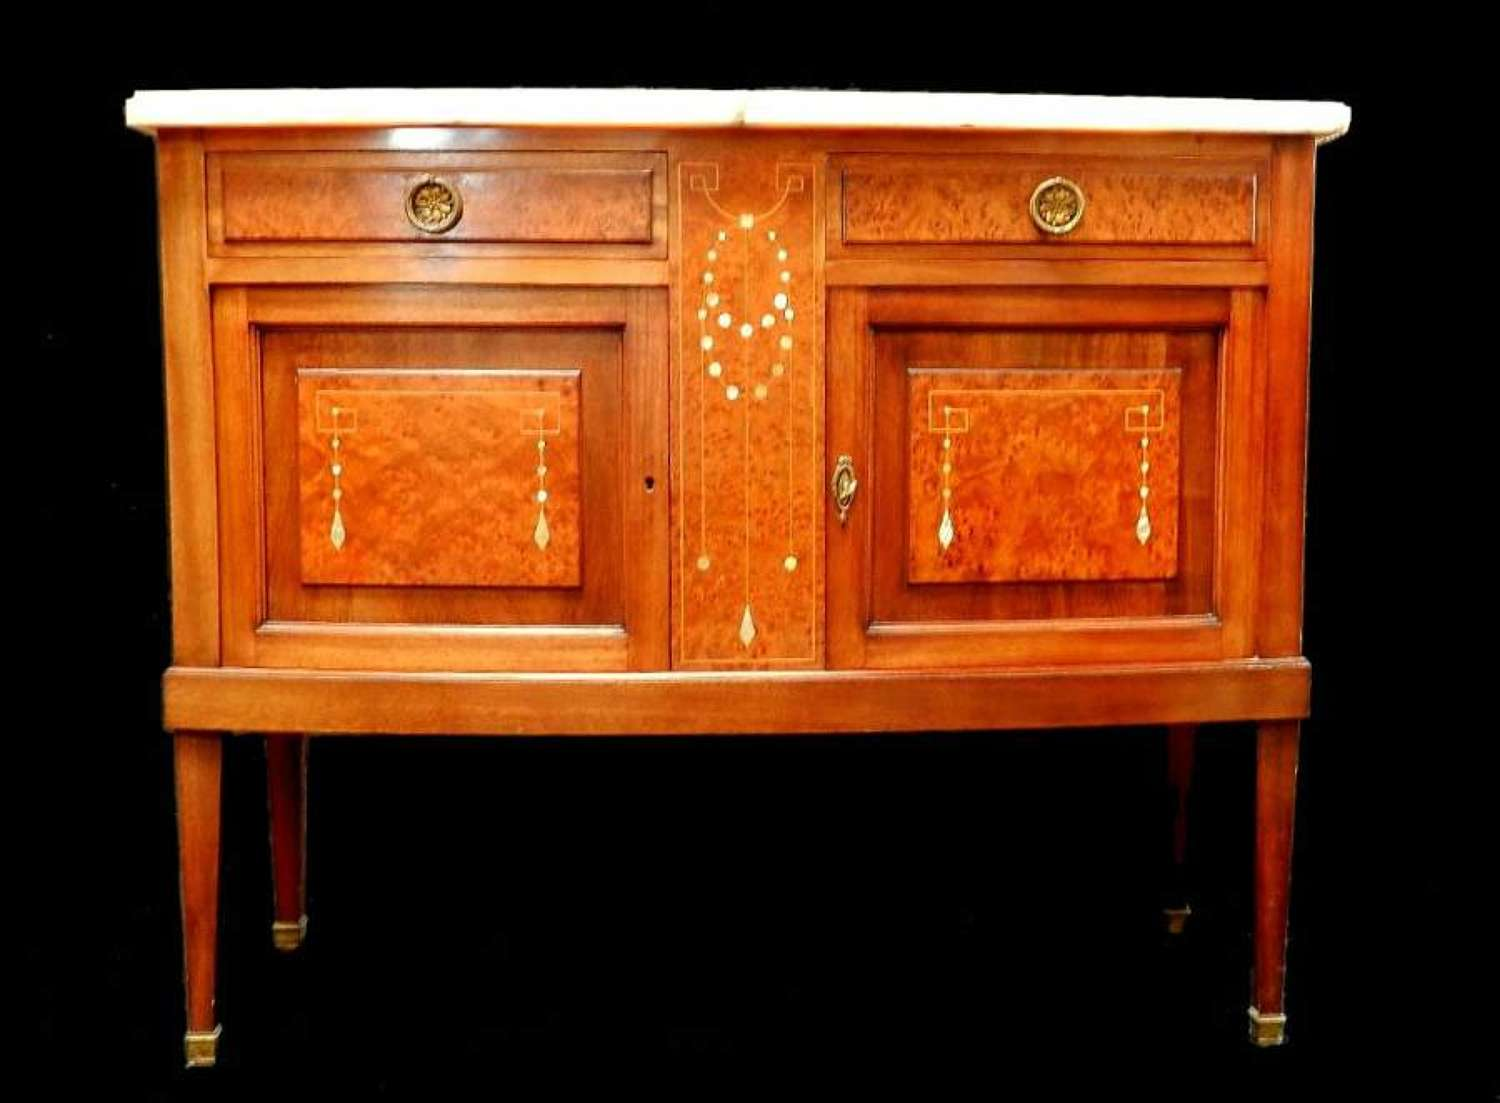 C1920 French Sideboard Chiffonier Side Cabinet Marble Top Inlaid MoP